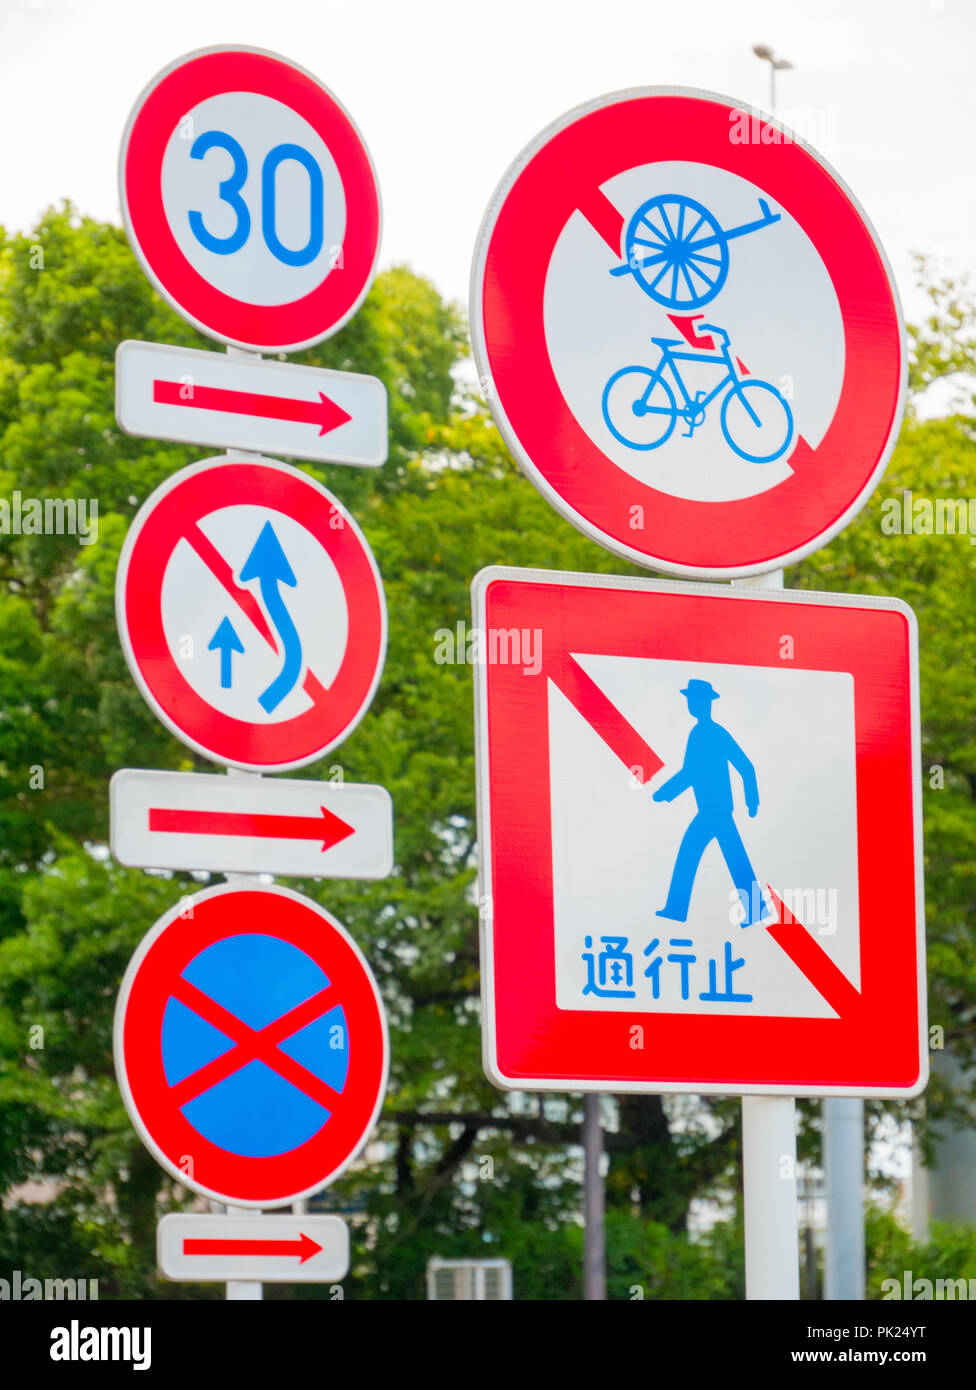 Various Traffic Signs On Japan Road The Speed Limited And No U Turn